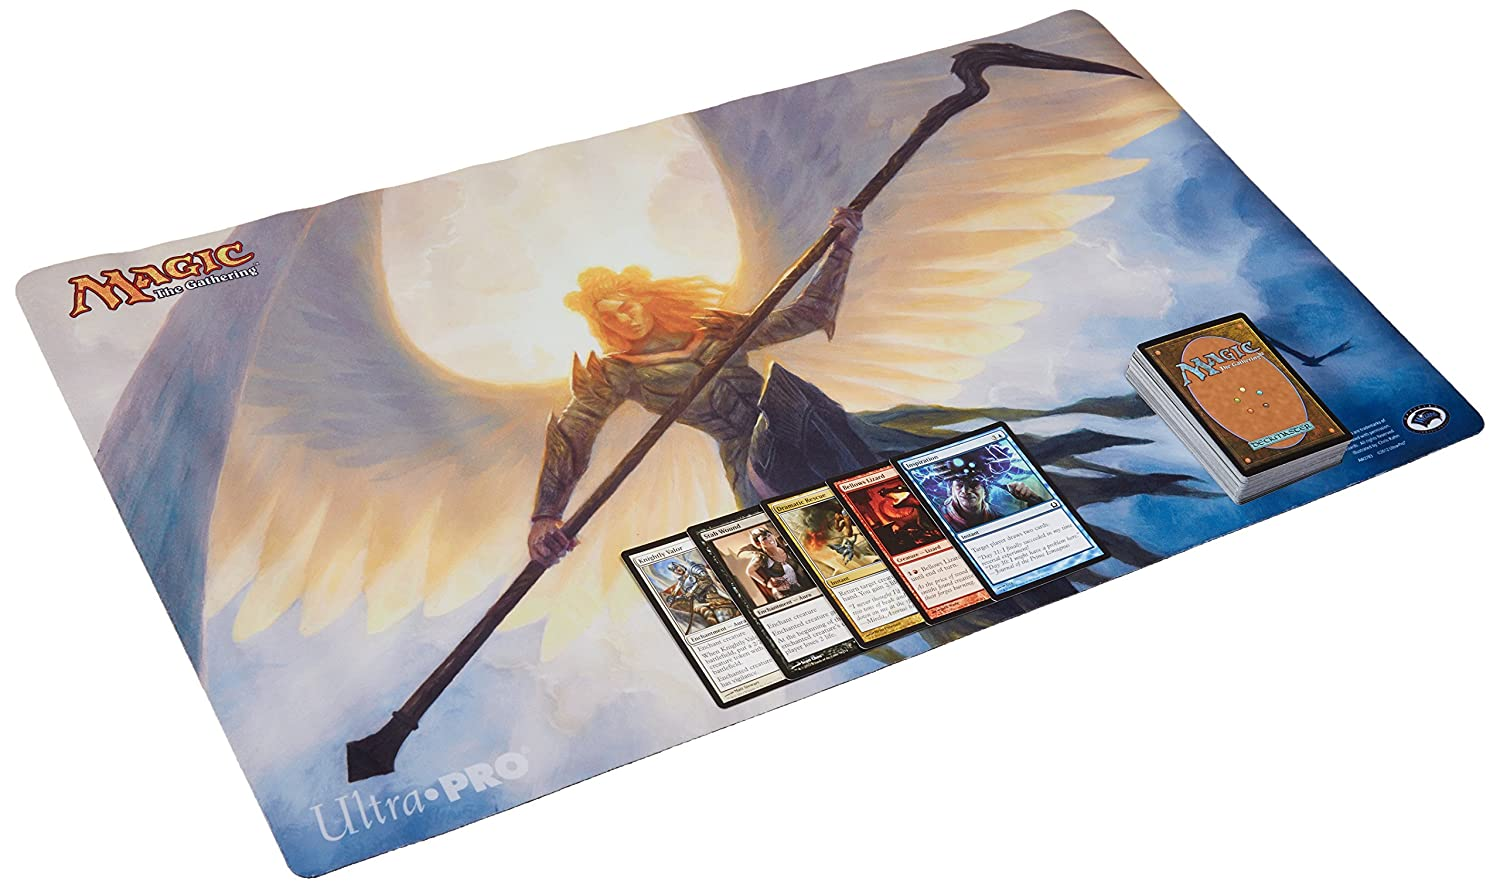 1000+ Assorted Magic the Gathering Cards with Free Playmat by Magic: the Gathering wizards of the coast